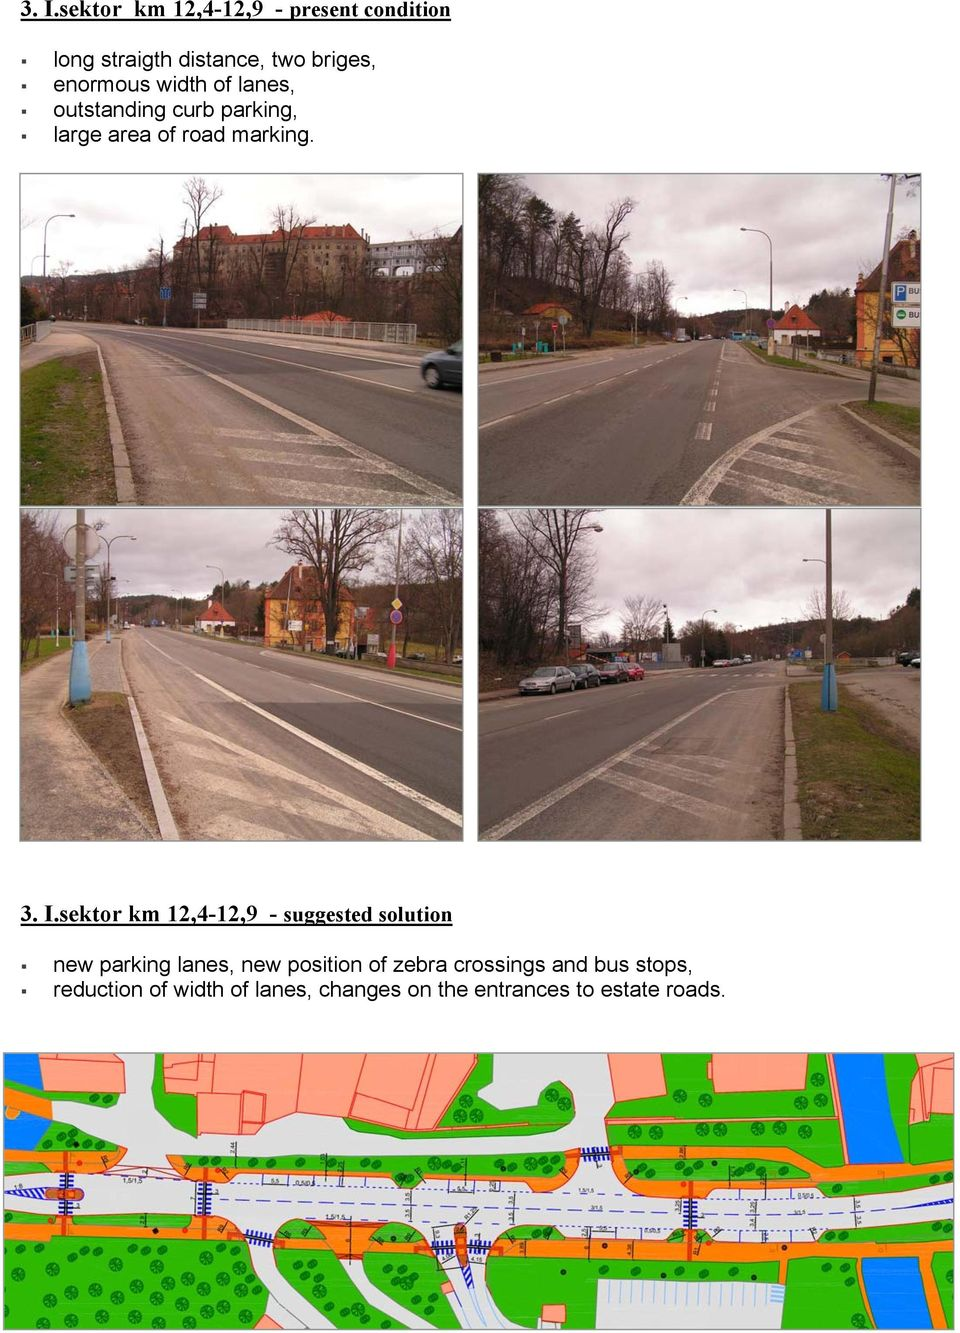 sektor km 12,4-12,9 - suggested solution new parking lanes, new position of zebra